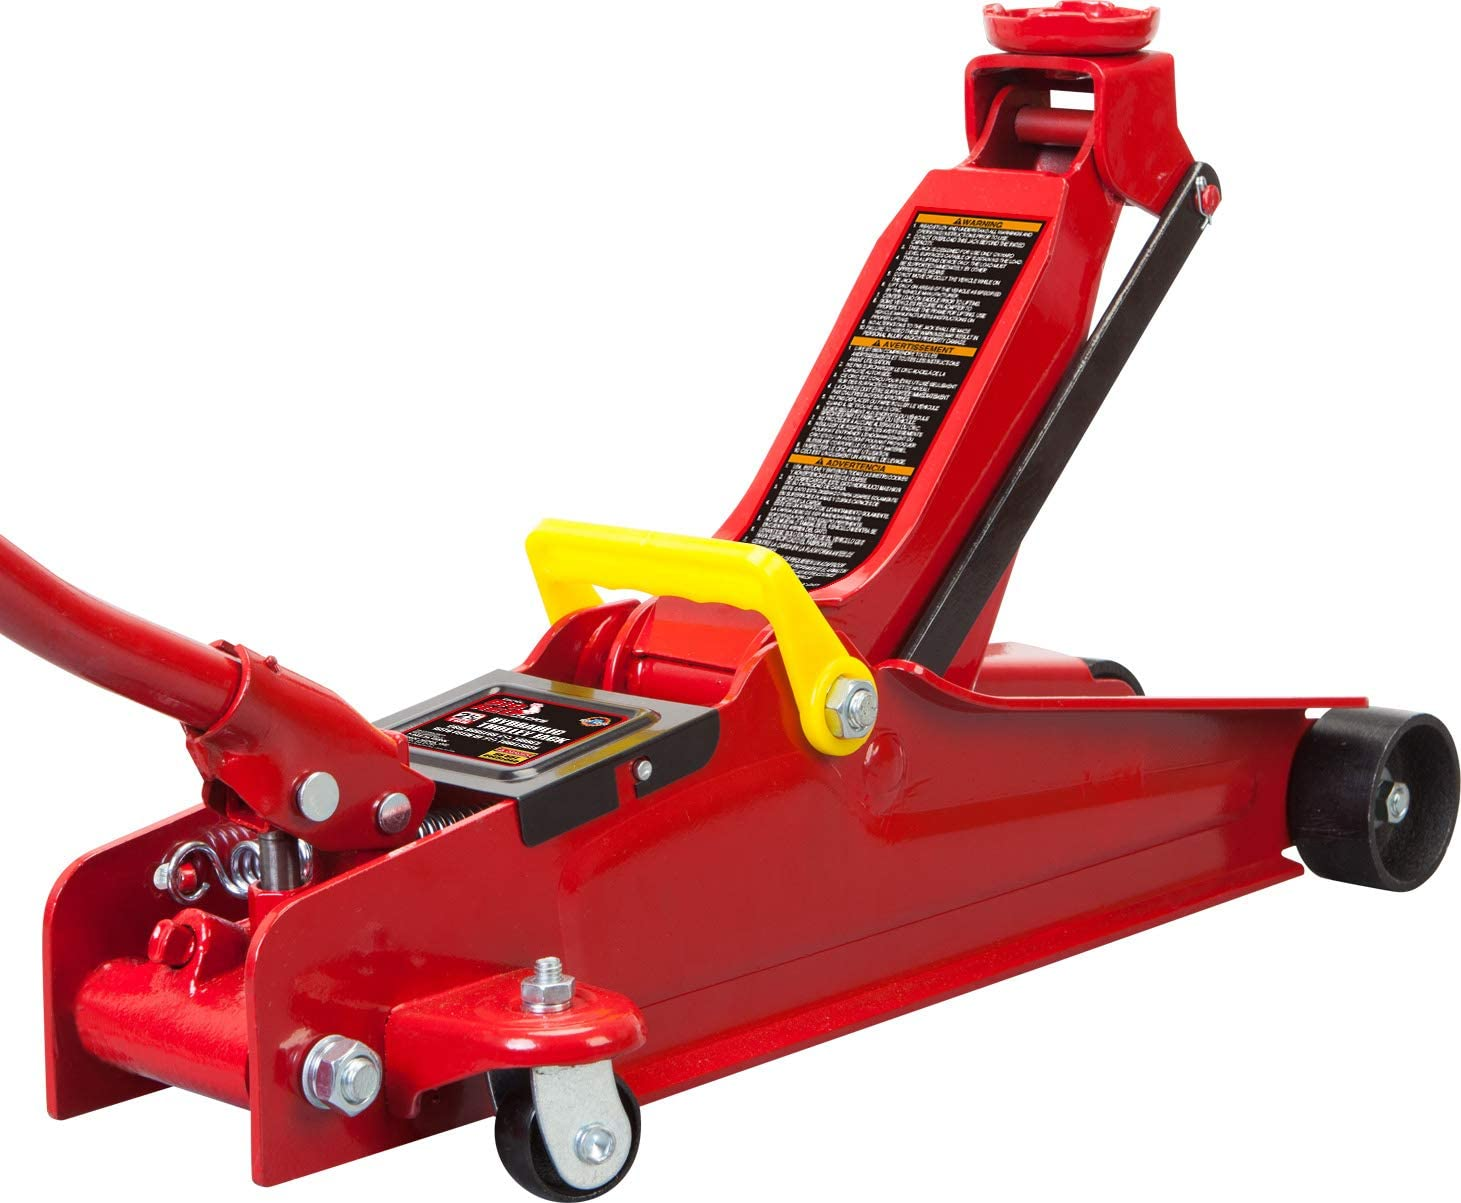 Red 2.5 Ton BIG RED T825051 Torin Hydraulic Low Profile Trolley Service//Floor Jack with Dual Piston Quick Lift Pump 5,000 lb Capacity